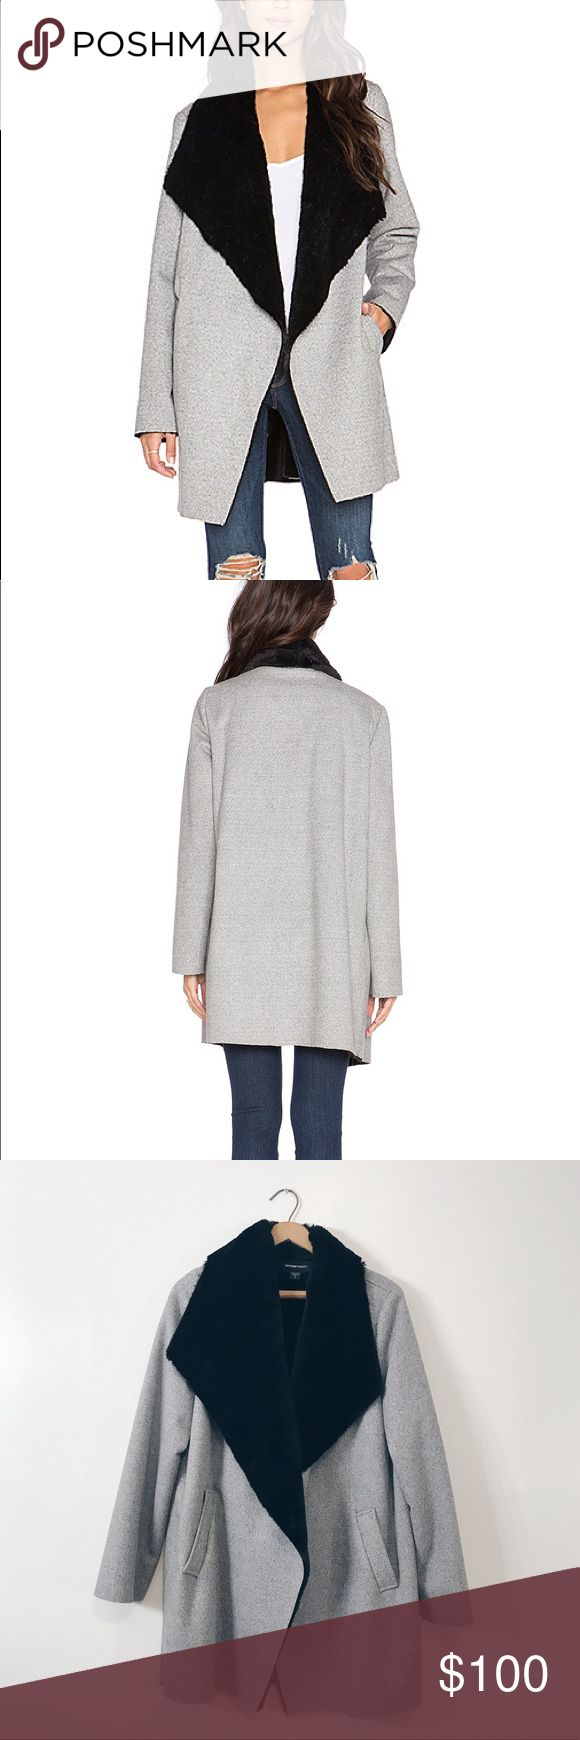 Fifteen Twenty Faux Fur Lined Drape Coat So beautiful and cozy! Made in USA. A dramatically draped collar reveals the luxuriously soft faux fur lining of a tweed patterned coat. Only worn a couple times. Fifteen Twenty Jackets & Coats